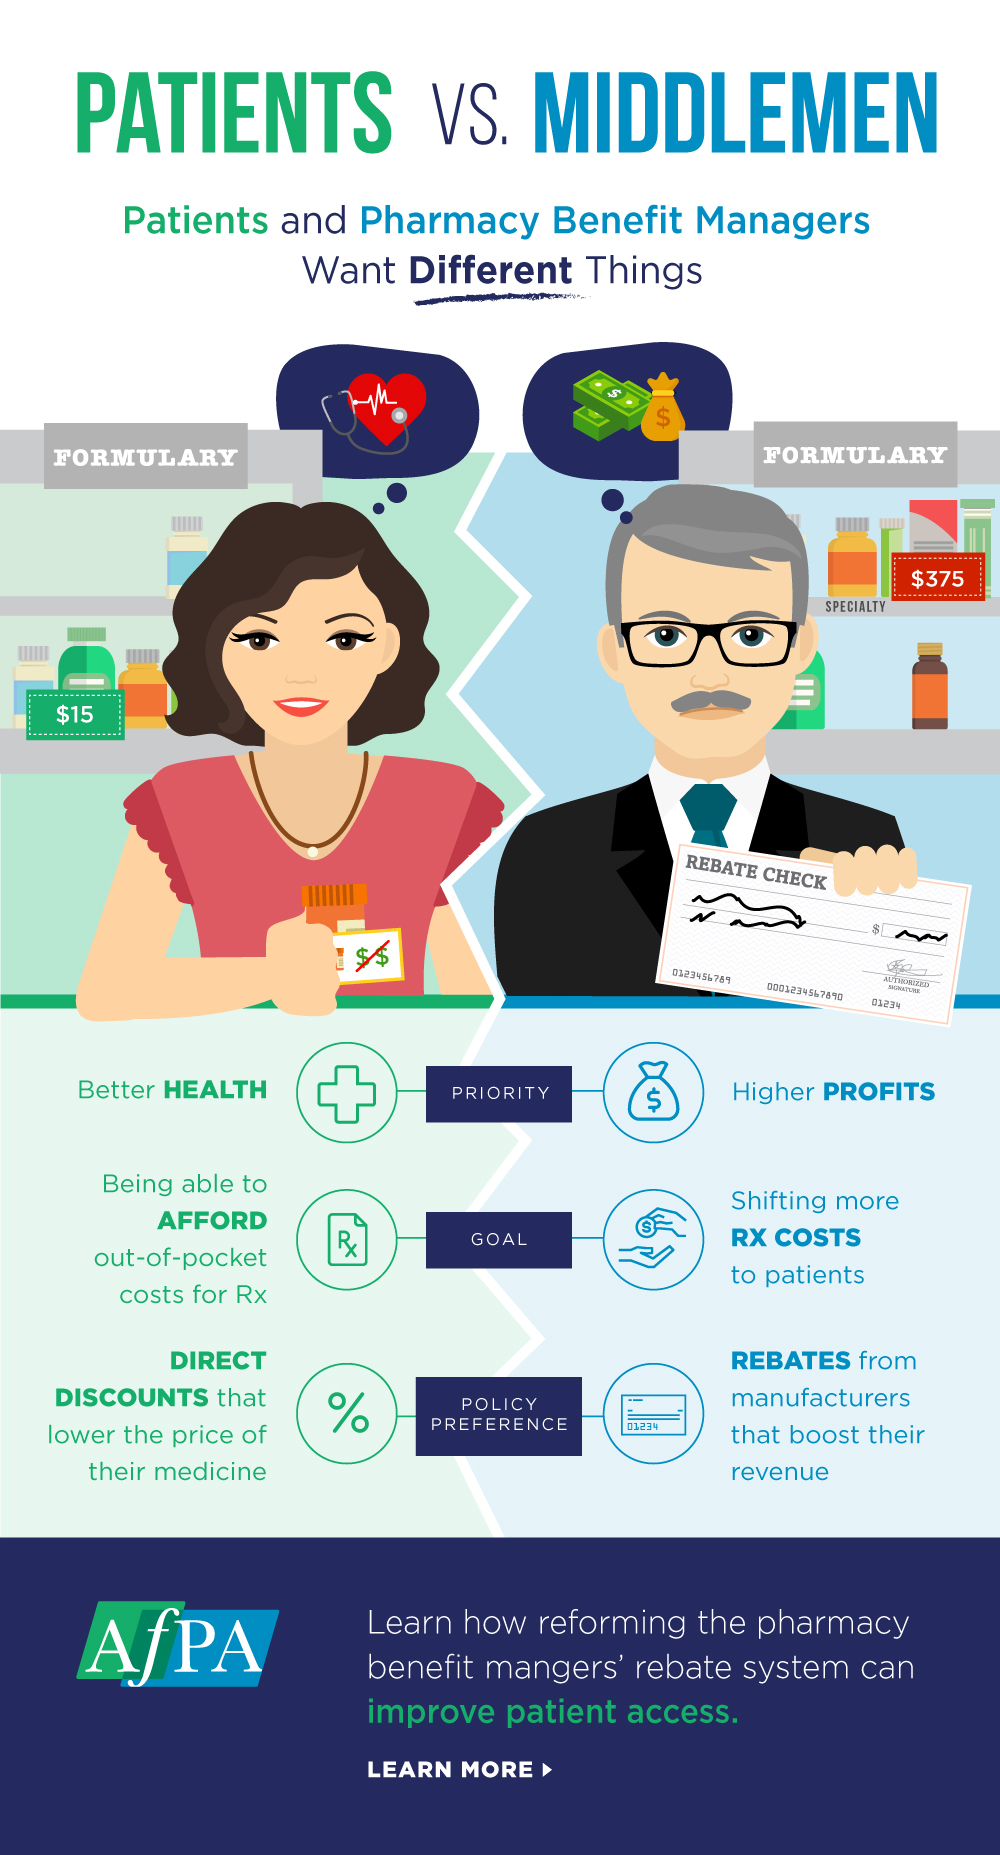 AFPA_Patients_VS_Middlemen_Infographic_April 2019.jpg